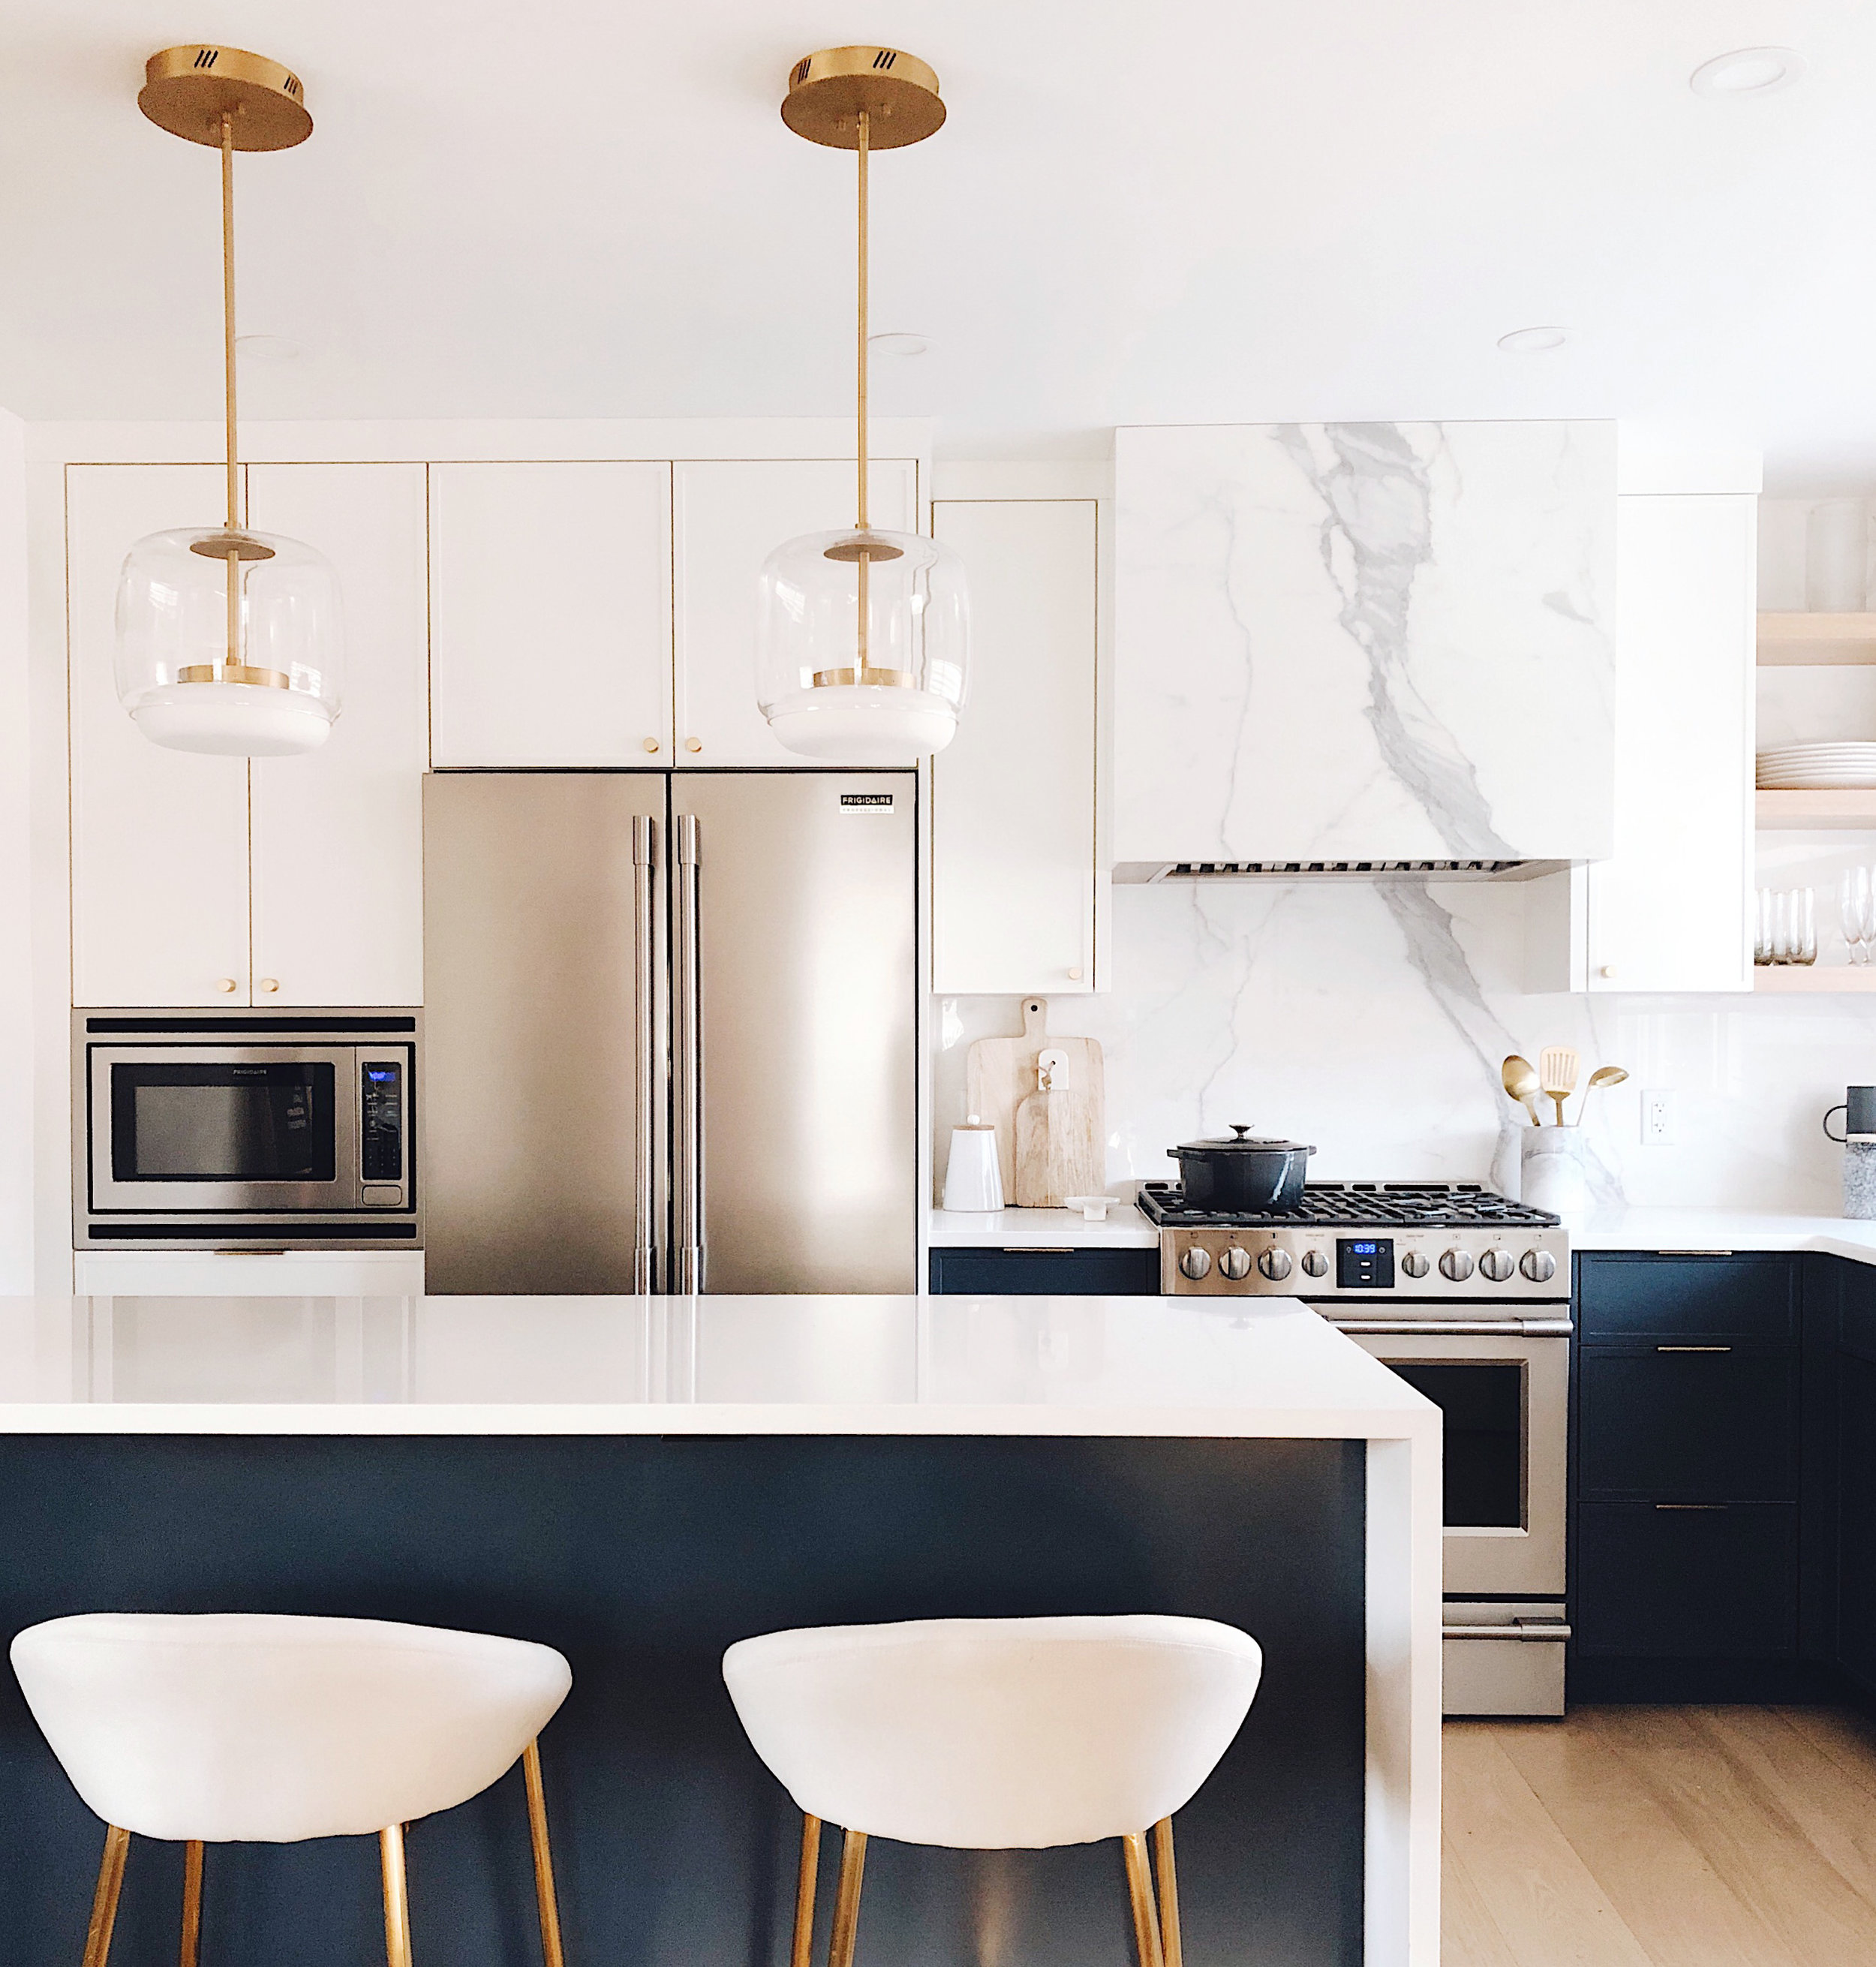 Before and After, Calgary Interior Designer, Nyla Free Designs, Marvel Cabinetry, Timberwolf Construction, Collaboration with HGTV's Property Brothers